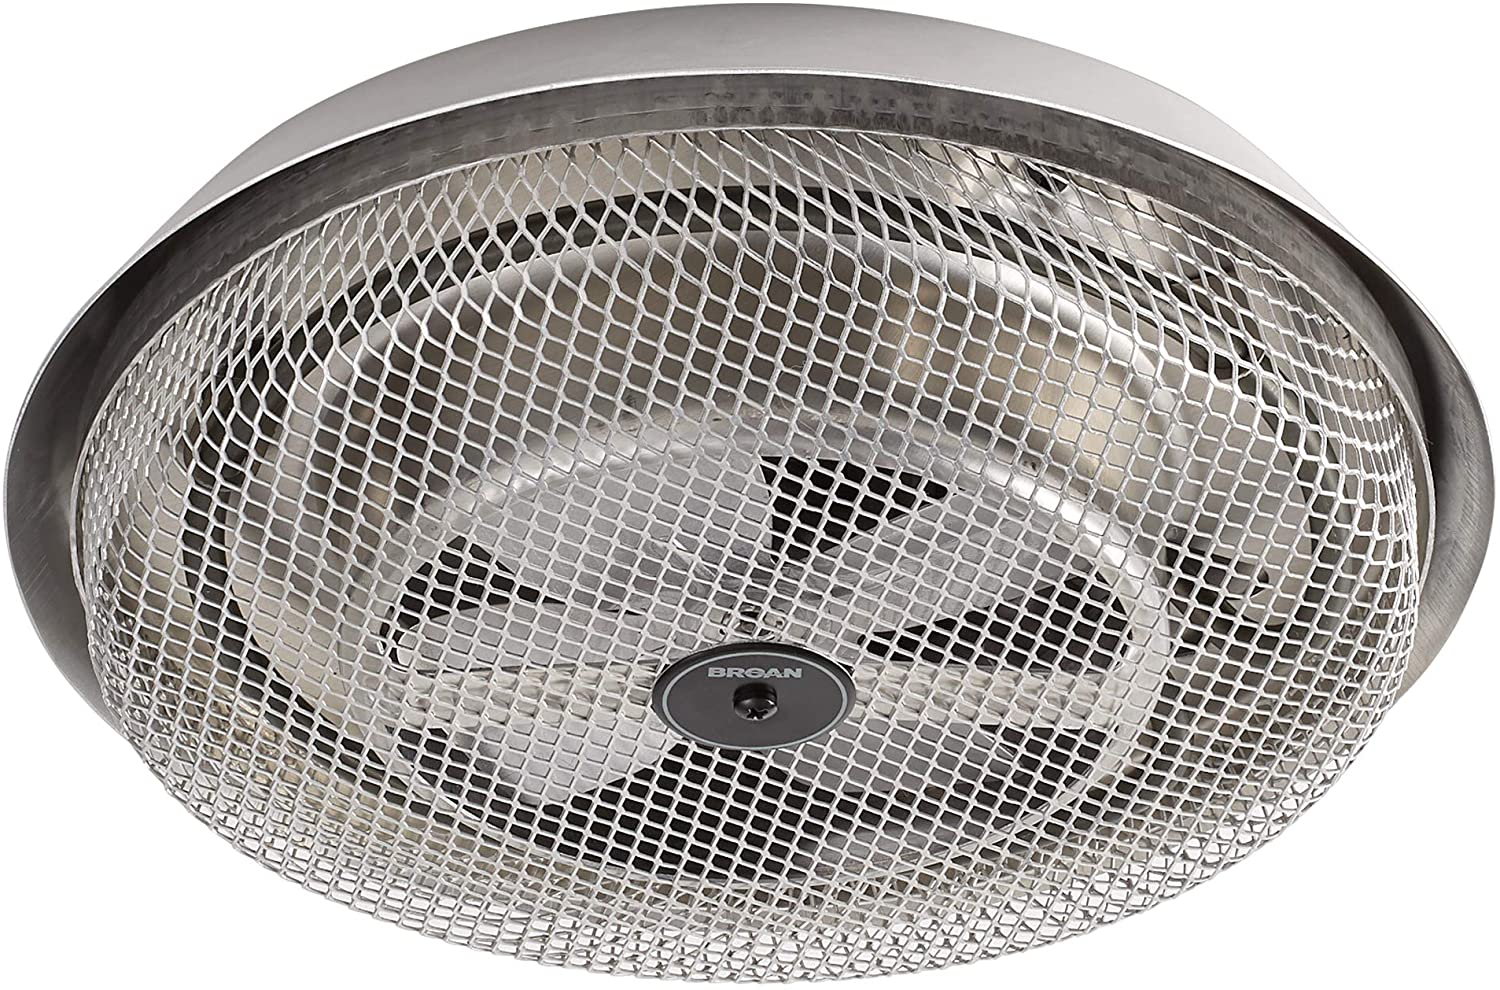 Broan-NuTone Fan-Forced Ceiling Heater review